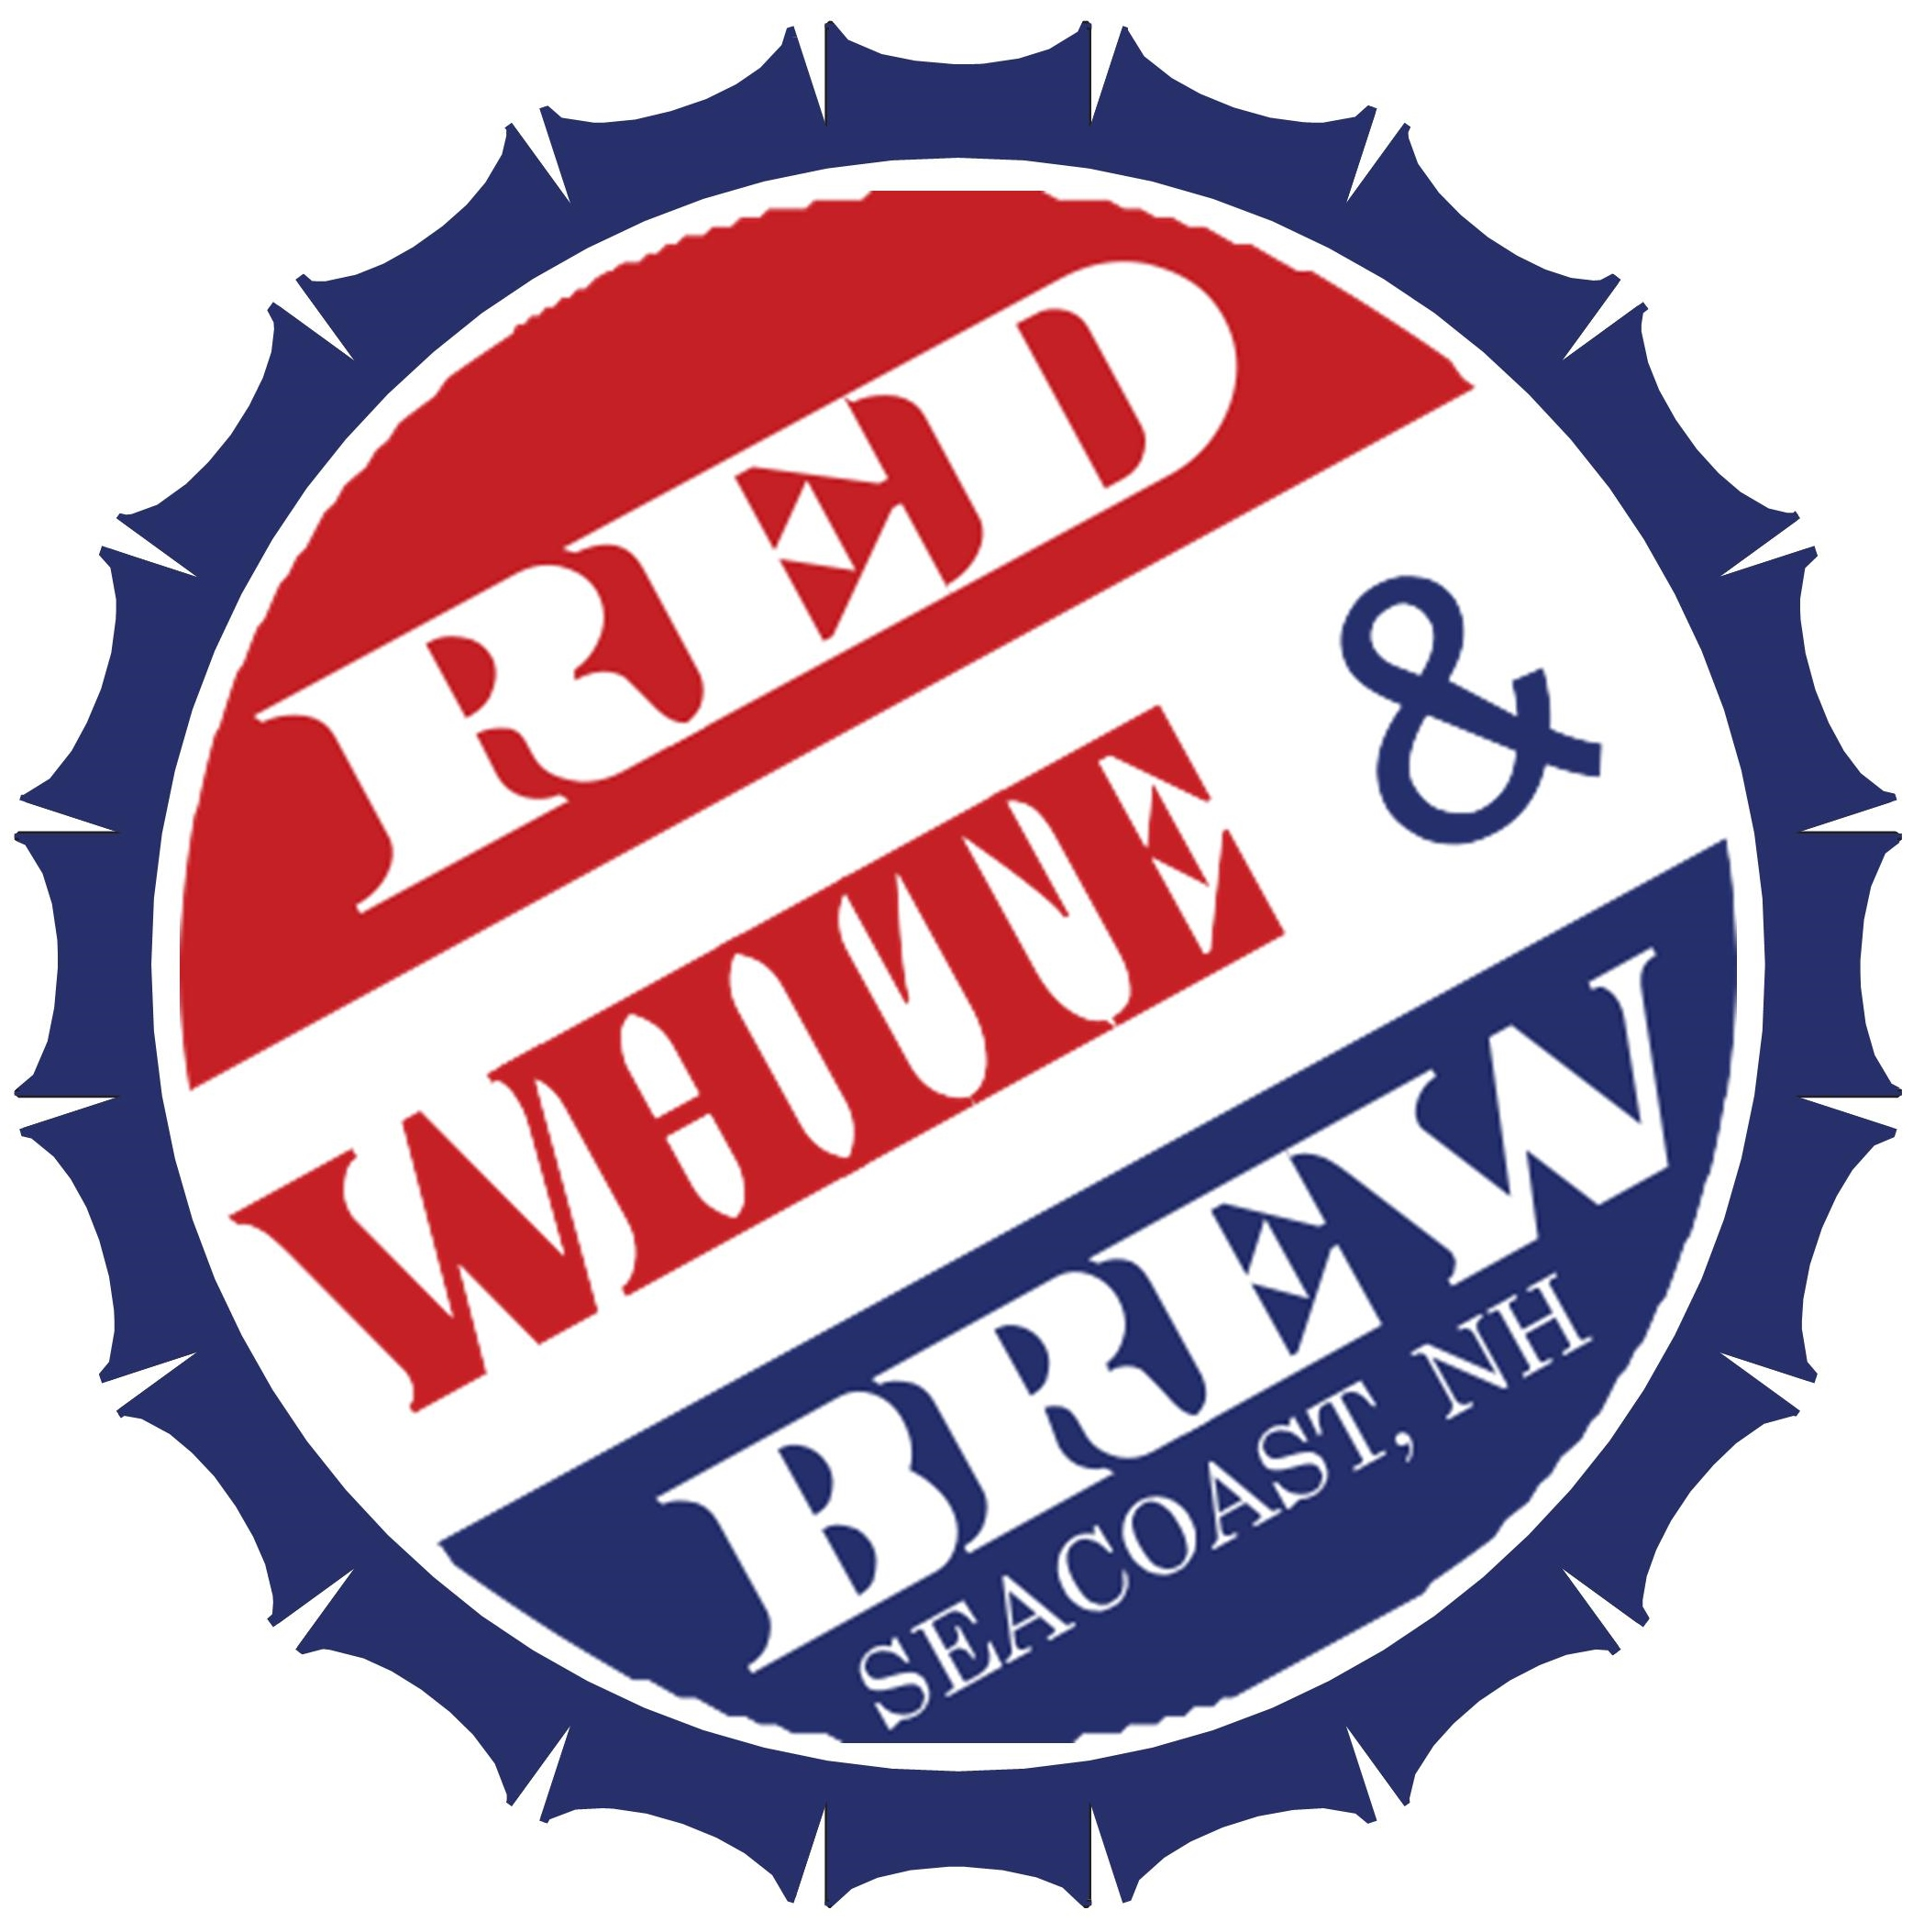 Tickets for Seacoast Red, White and Brew Festival in ... - photo#2